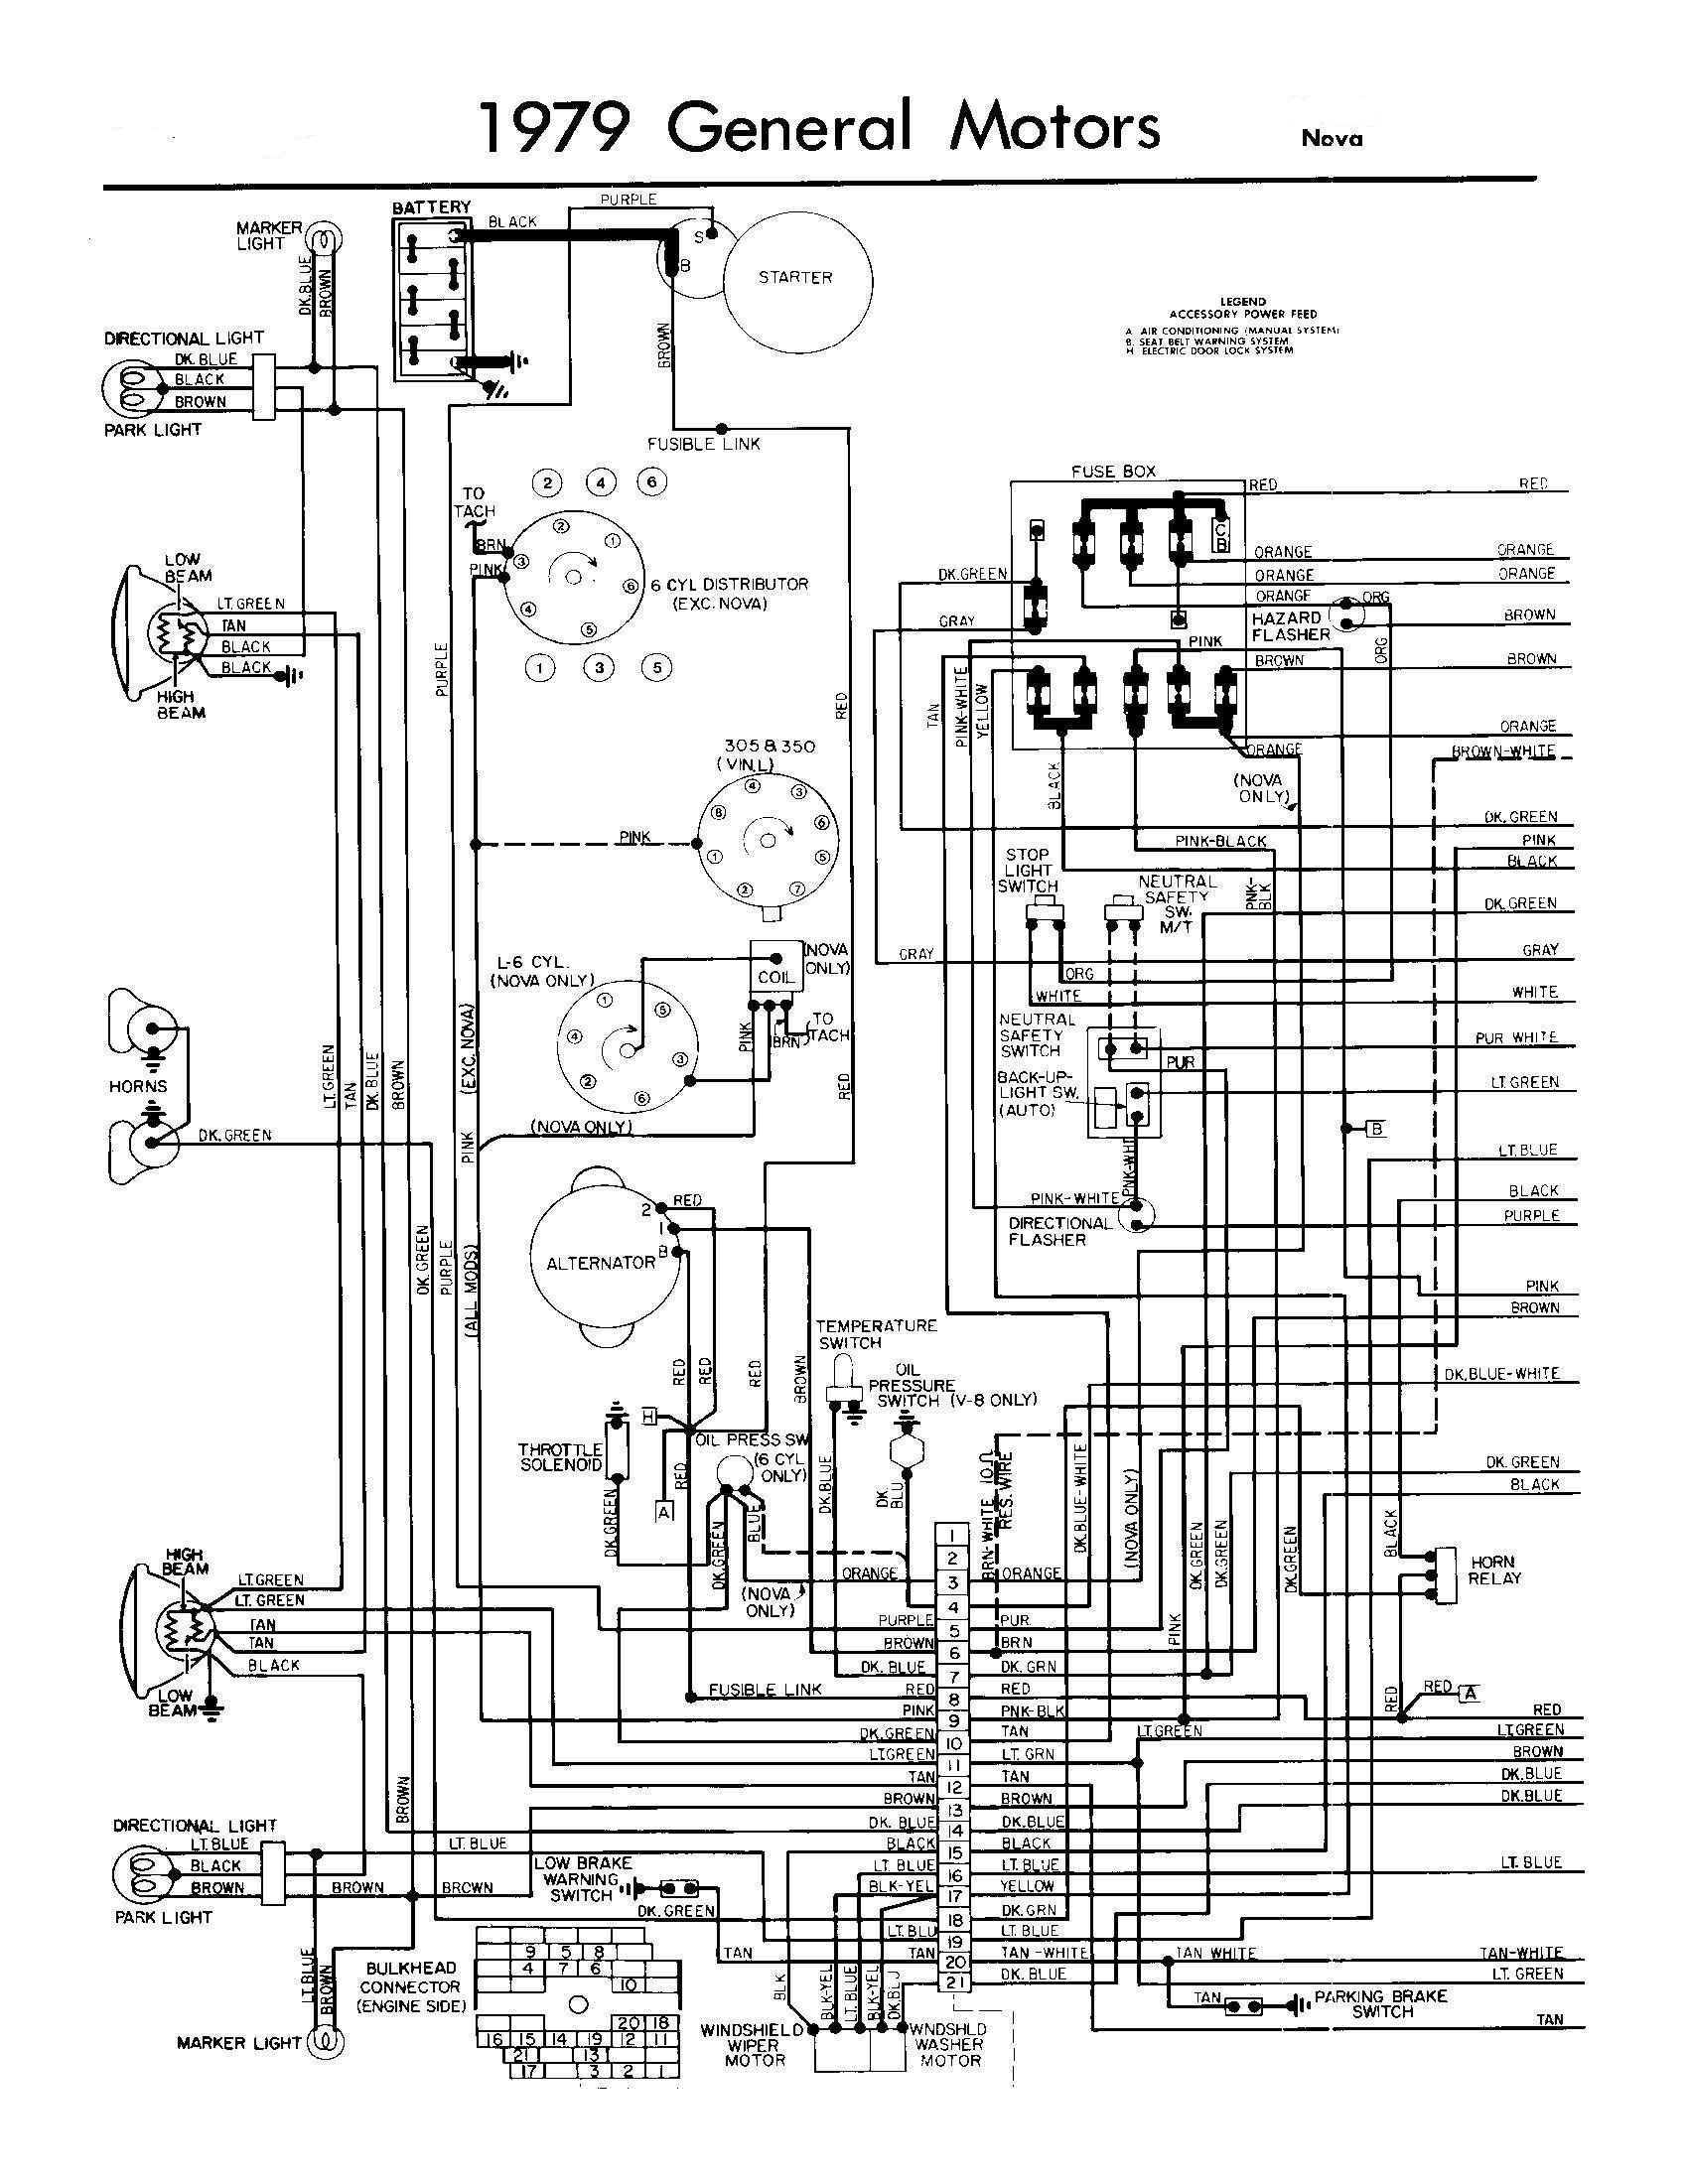 Ih 706 Wiring Diagram | Wiring Liry Farmall Cub Tractor Wiring Diagram For on